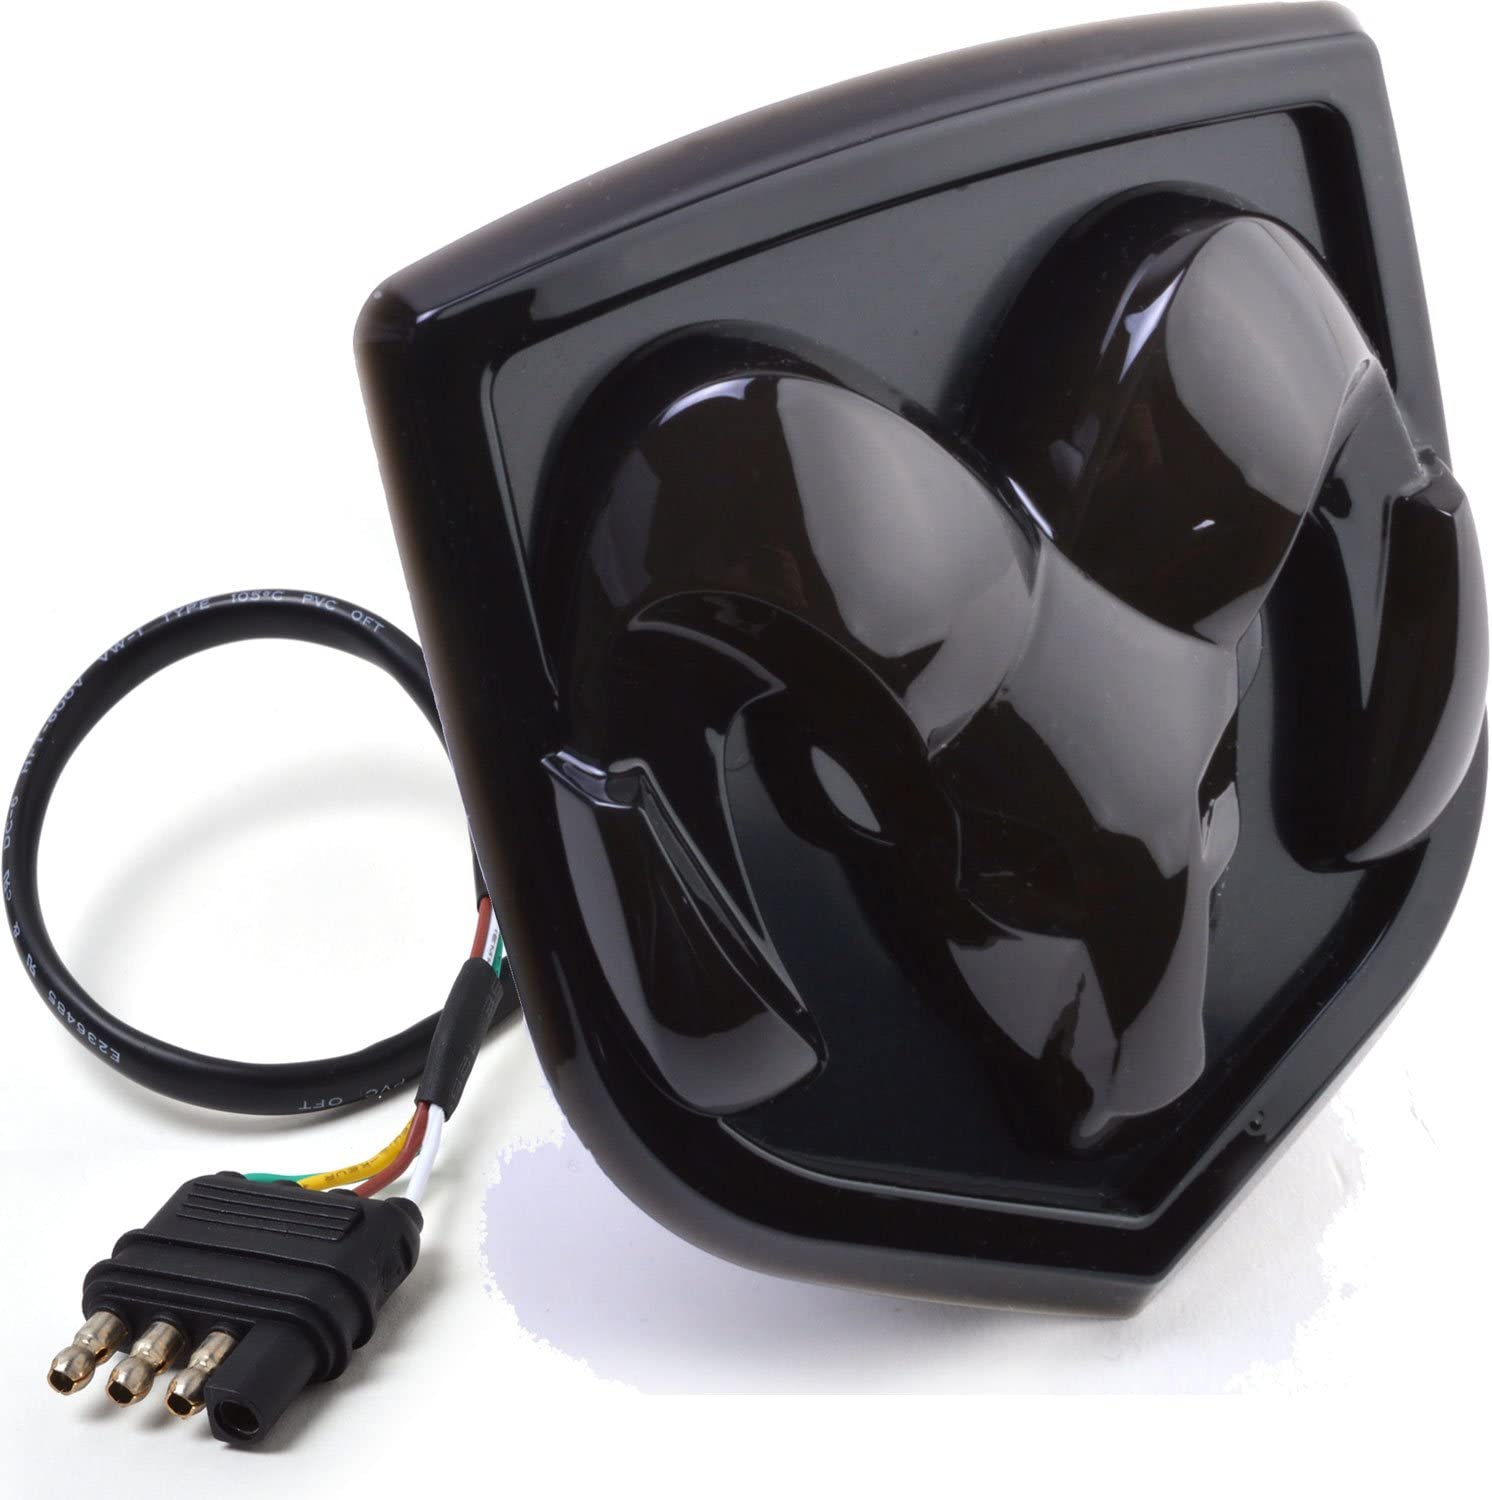 Bosswell LED Lighted Hitch Cover for Dodge RAM Truck Trailer Towing Receiver Black Fits All 1.25 /& 2 Receiver